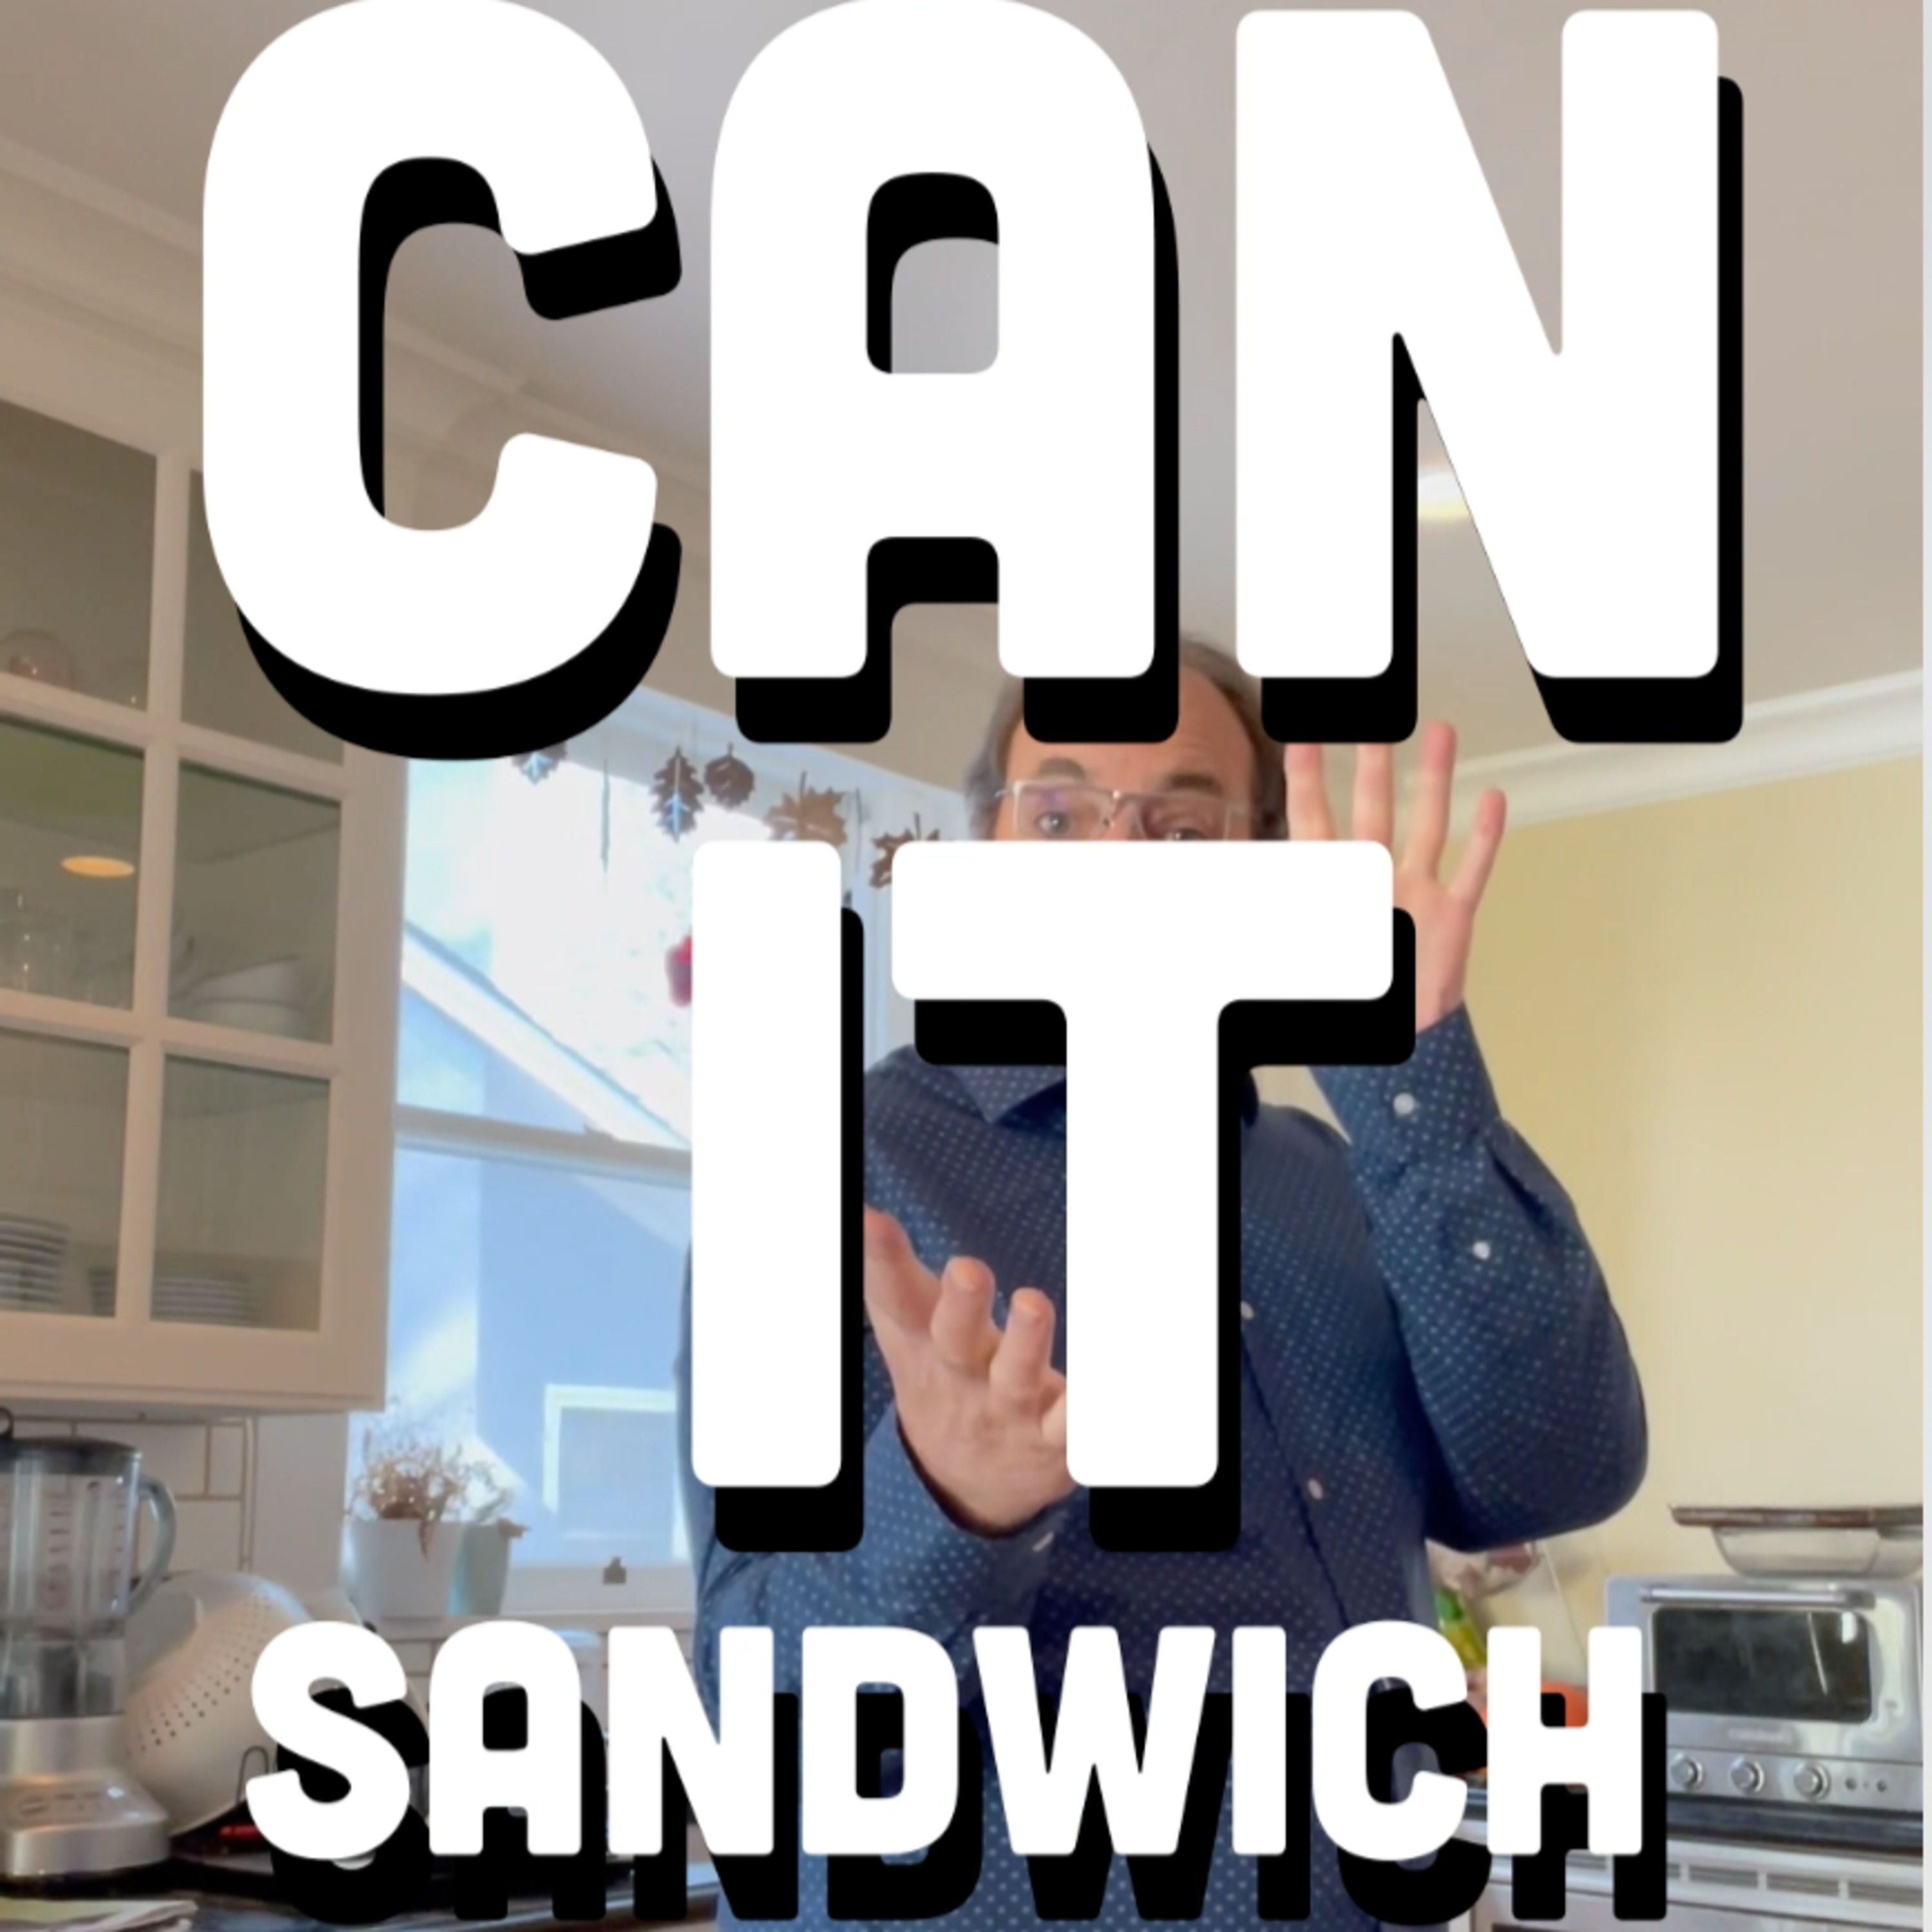 ? Can It Sandwich? Smith's Smoky Bacon/Utz Buttermilk Ranch/Carolina Kettle Rosemary & Garlic potato chips on In The Chips with Barry